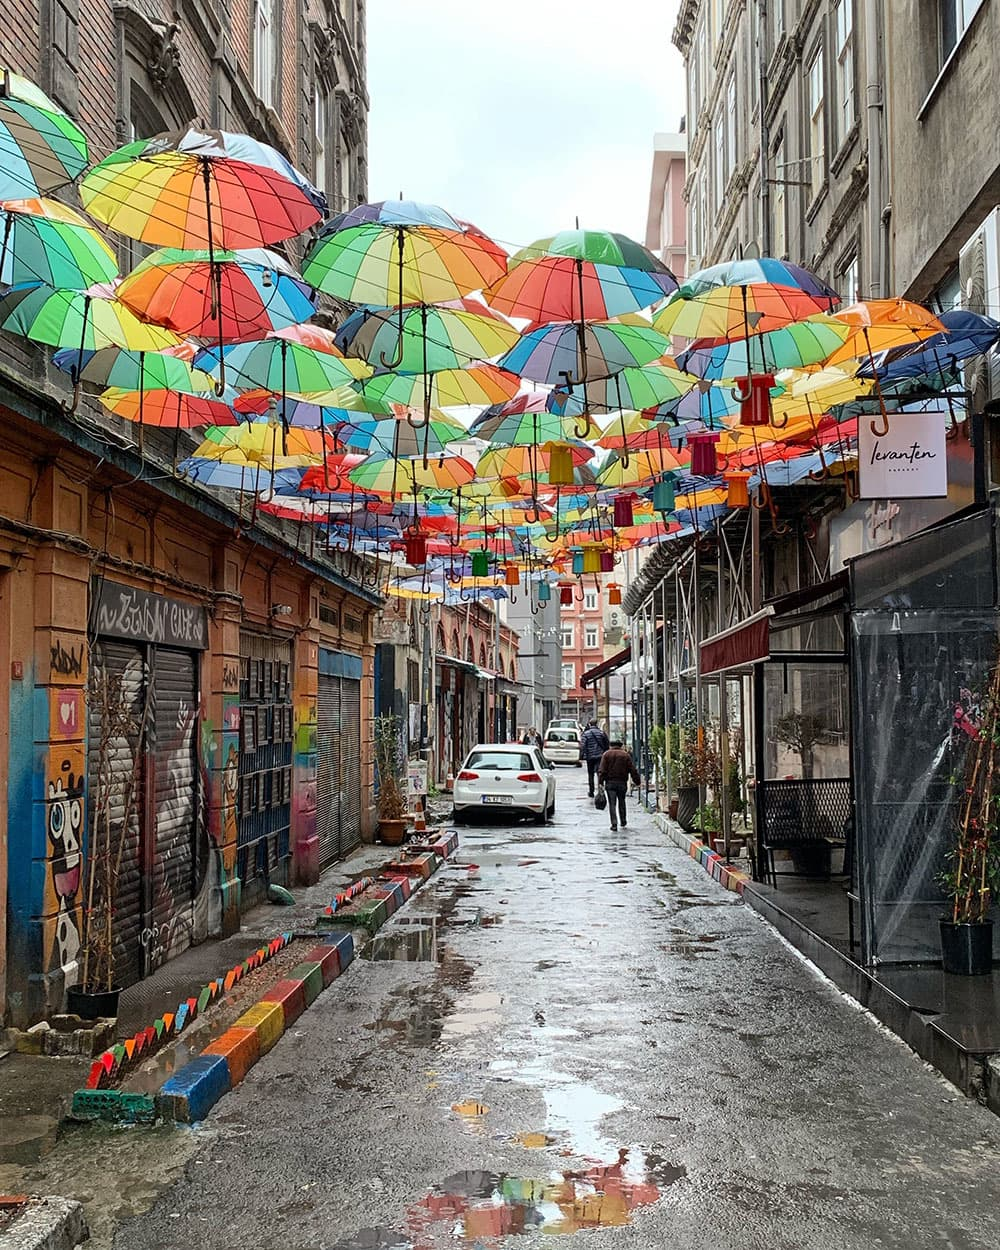 Nestled in the European Beyoğlu district, Karaköy has gone through a personality transformation over the years.